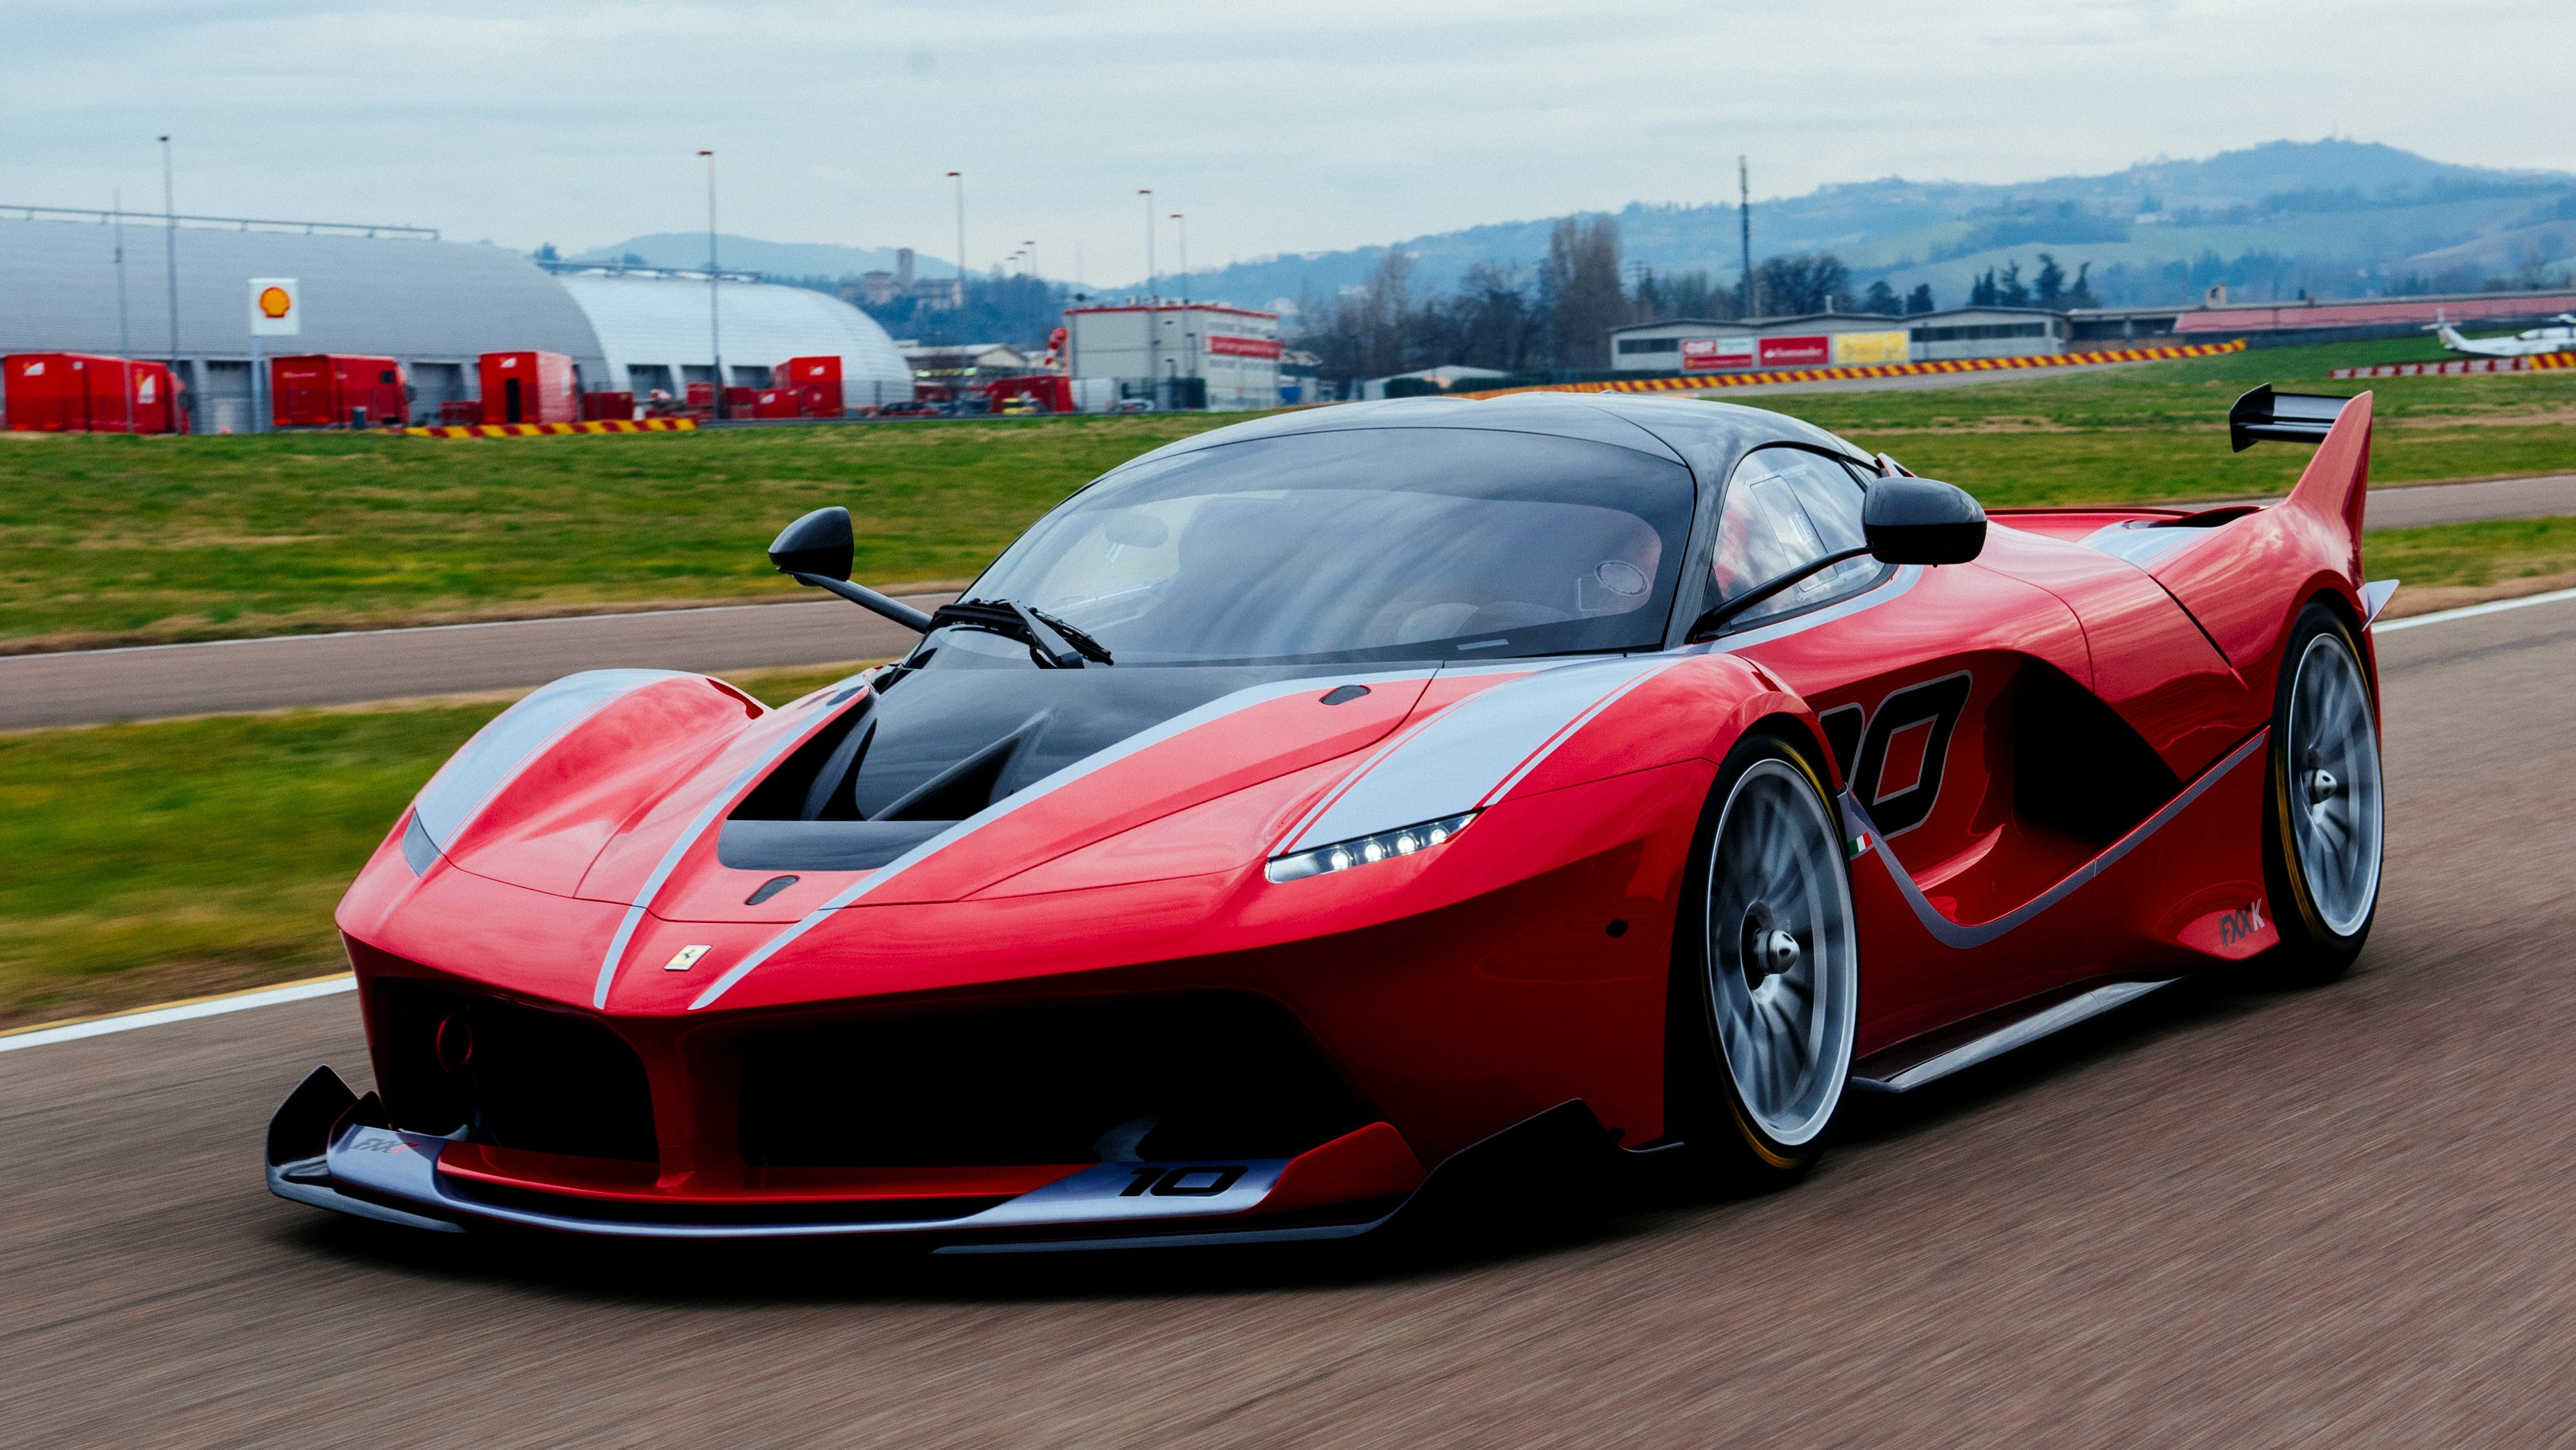 ferrari fxx k wallpapers images photos pictures backgrounds. Black Bedroom Furniture Sets. Home Design Ideas